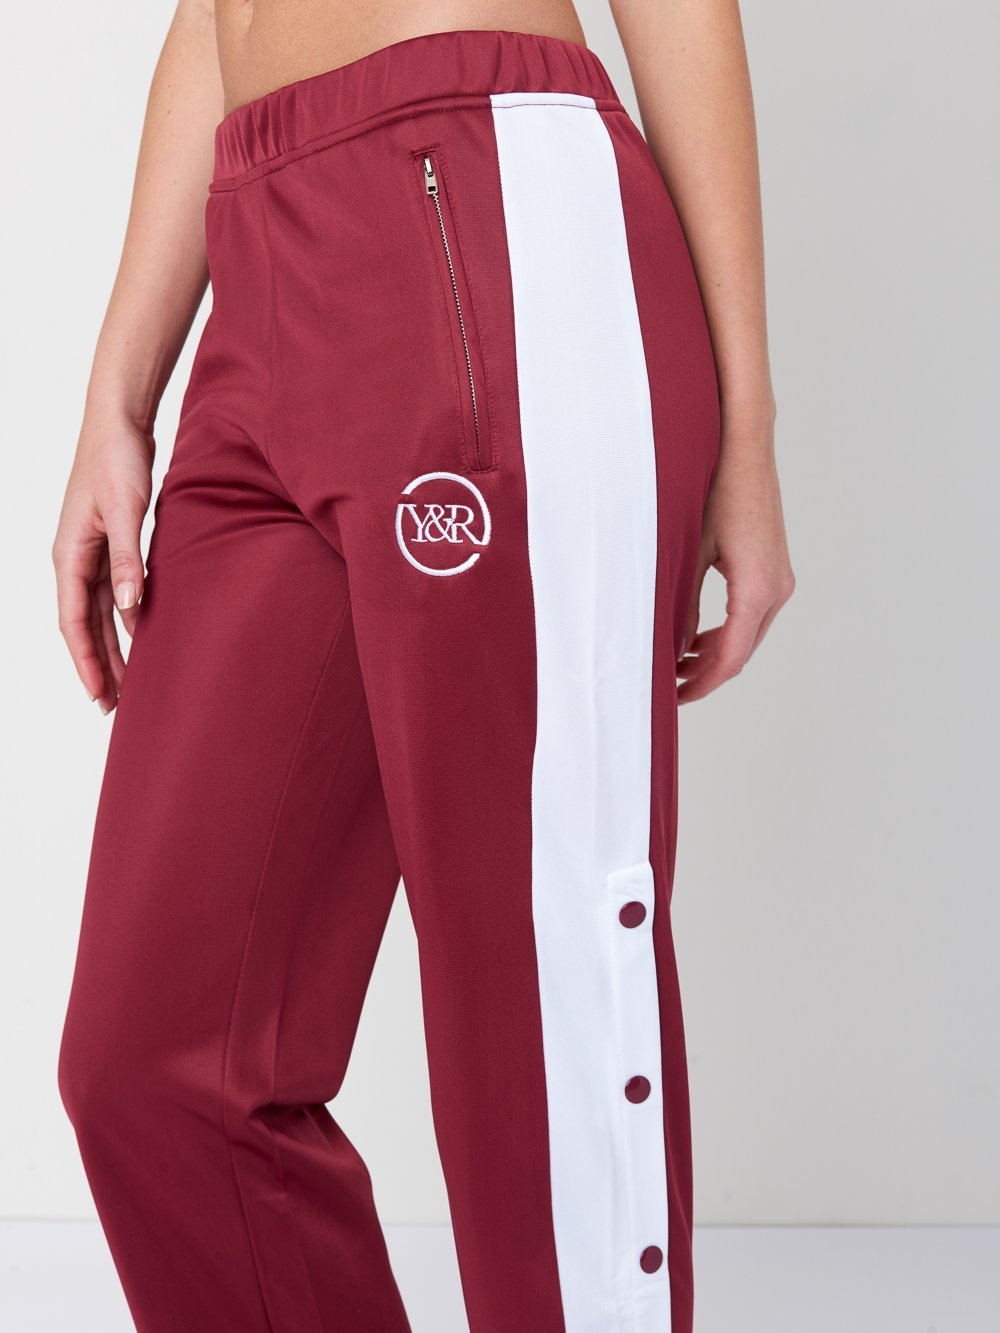 Reckless Girls Womens - Bottoms - Pants Kenya Mid-Way Tear Away Pants- Burgundy